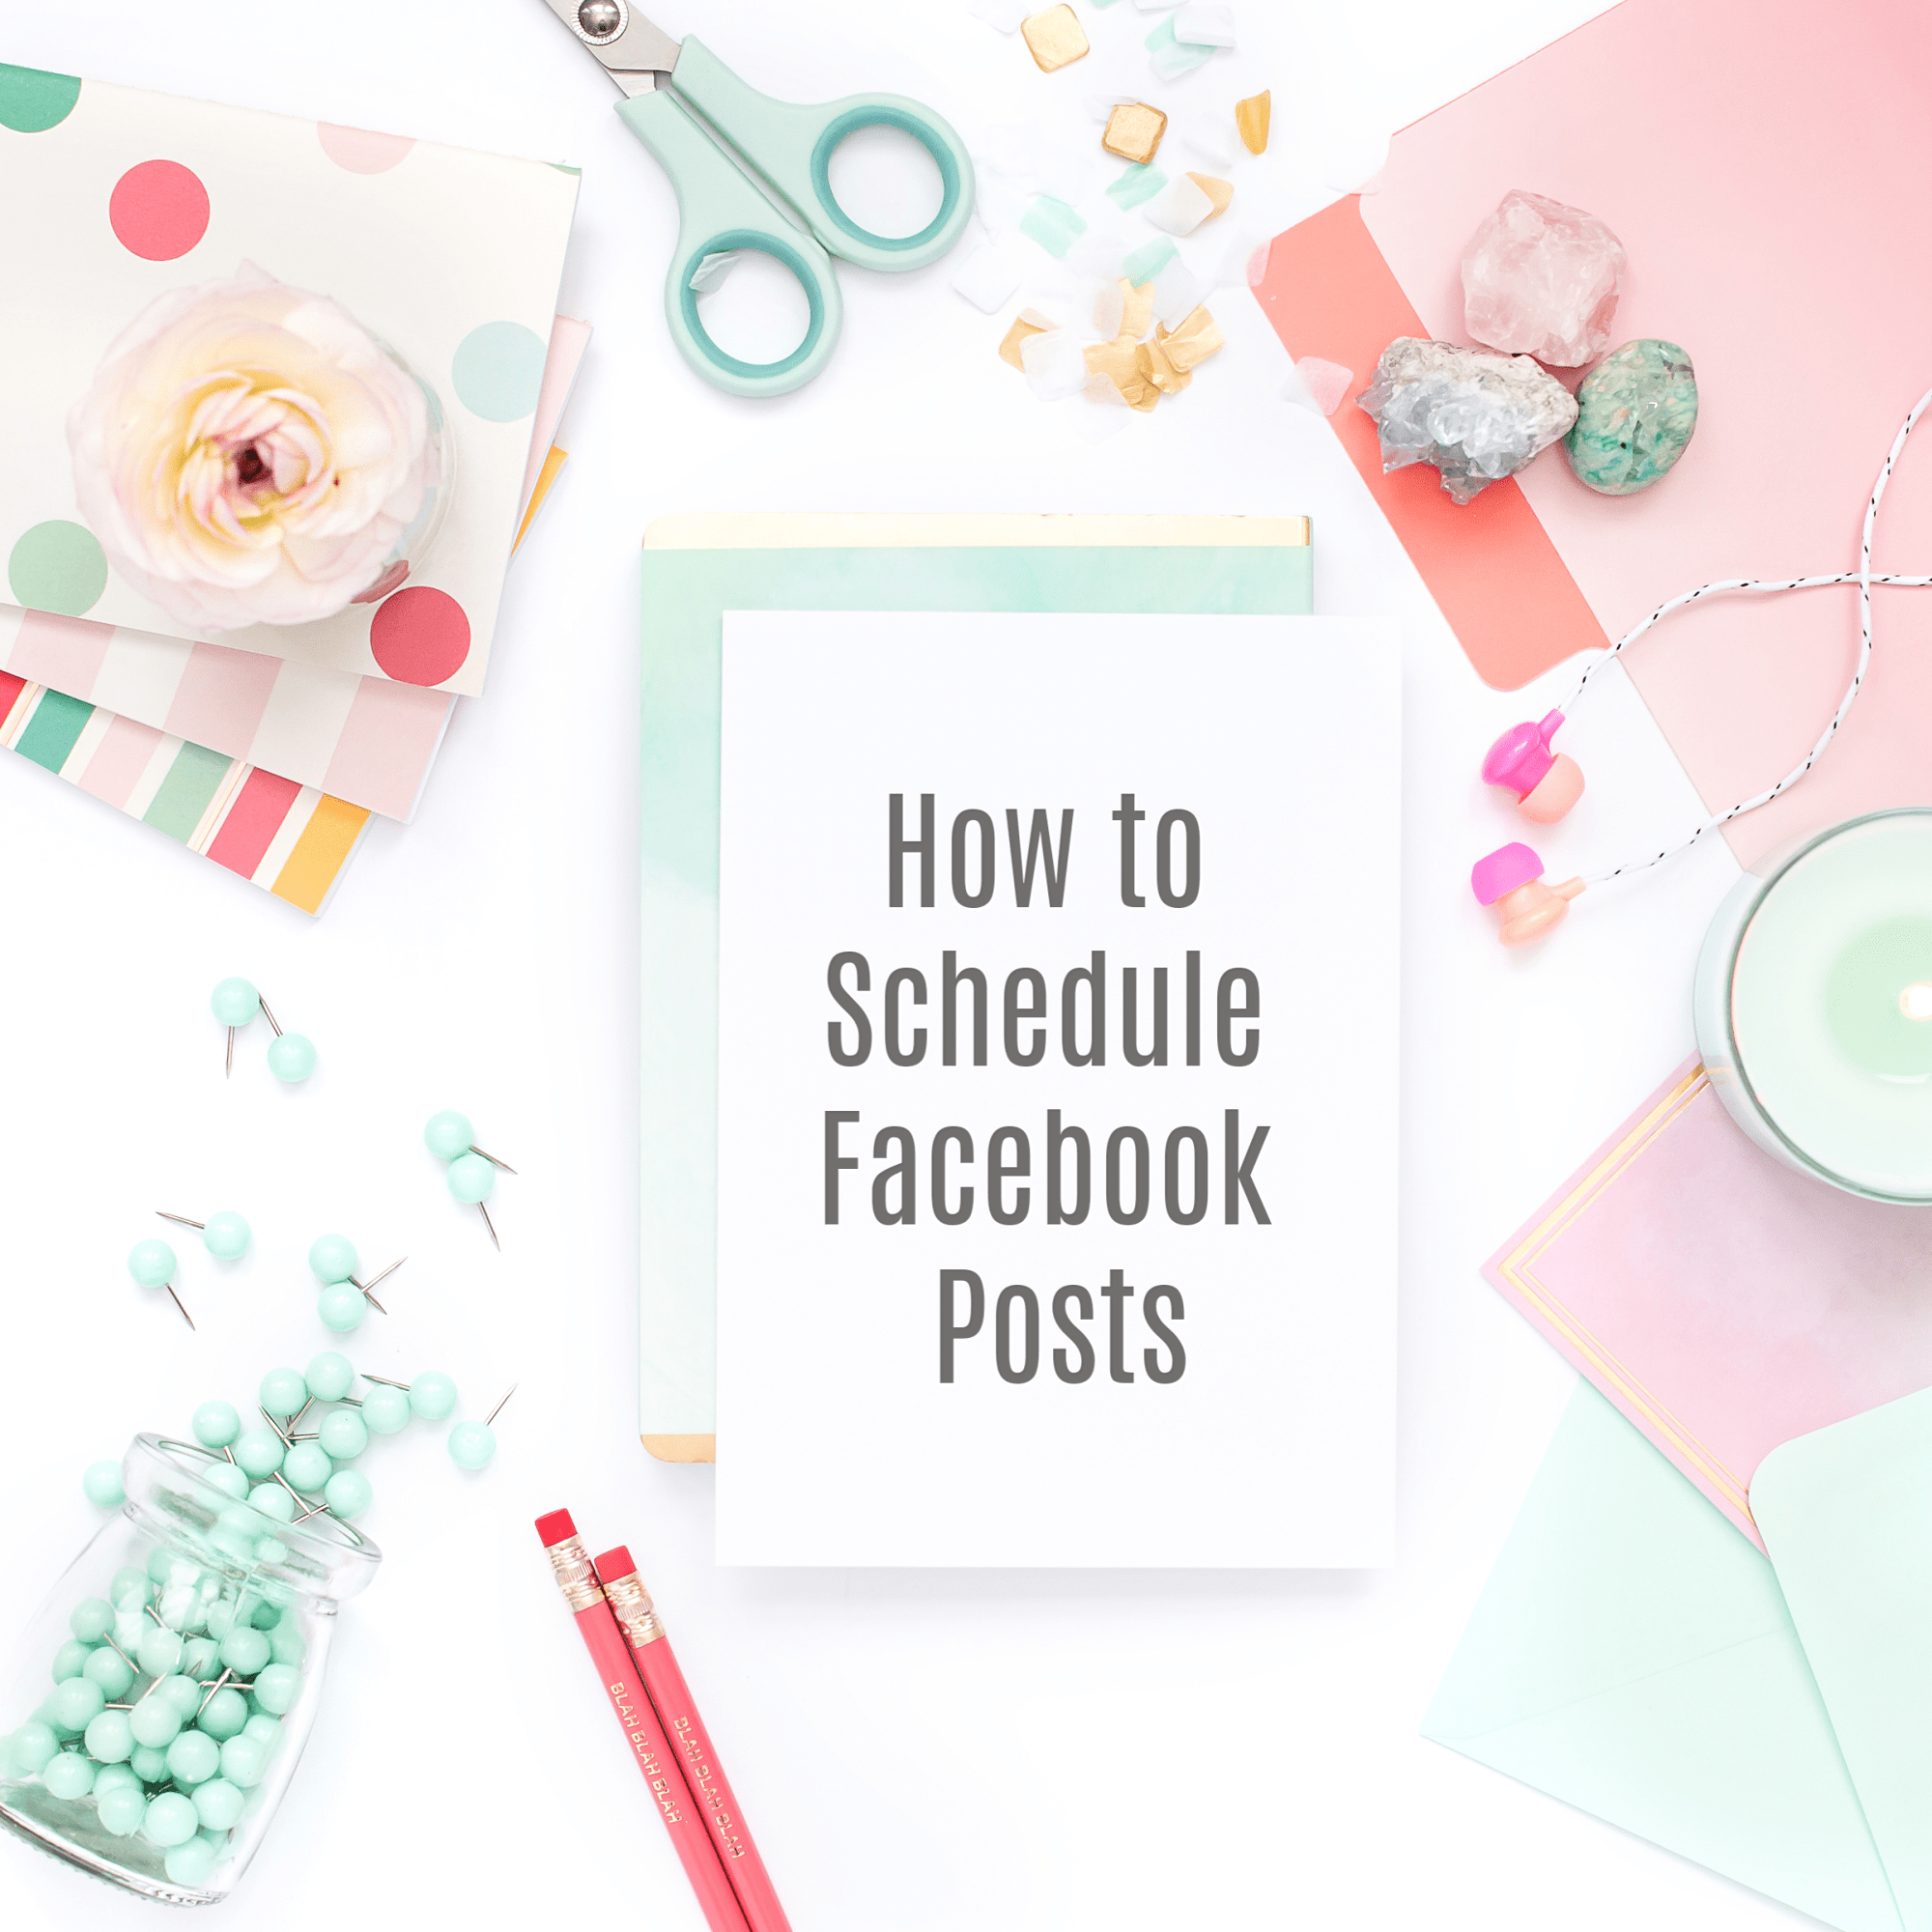 Here are some time-saving tips so you can schedule Facebook posts and engage with your followers. become a wedding planner free printable, Event Planner, free printables, Free Wedding Planner Training, how to become a wedding planner, productivity, Scheduling Facebook Posts, social media, Wedding Business, wedding business products, wedding planner business, wedding planner education, wedding planner materials, Wedding Planner products, wedding planner resources, wedding planner tools